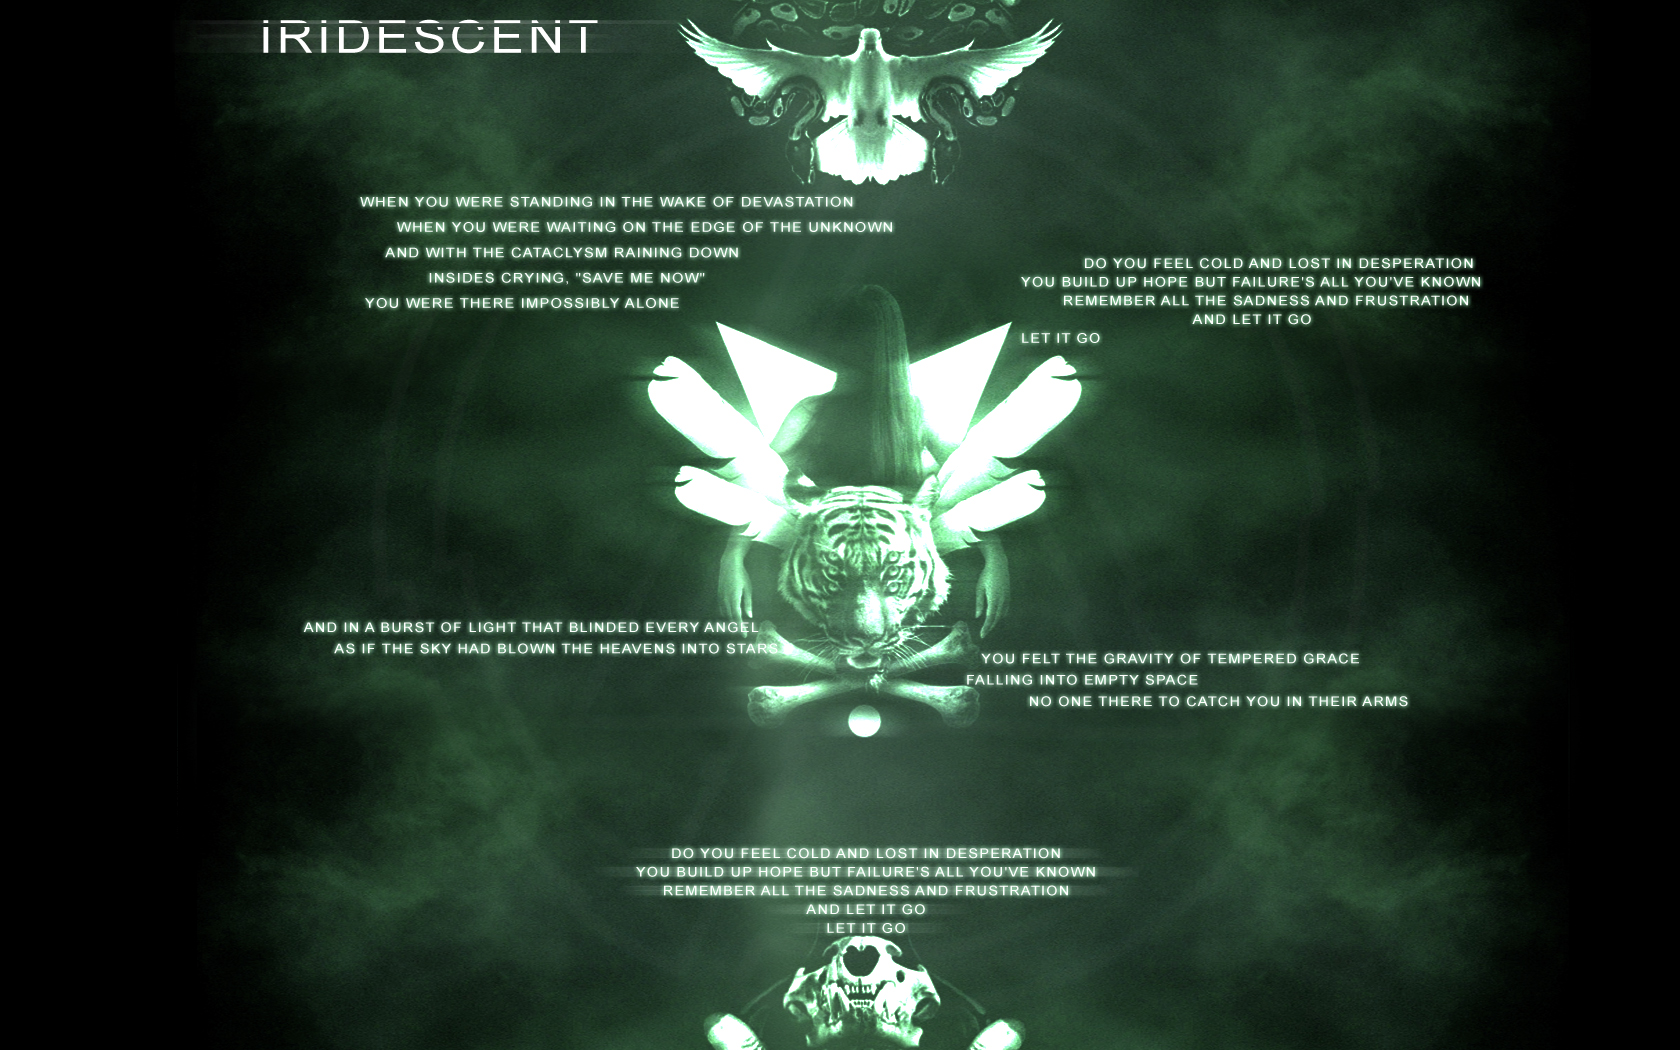 Linkin Park Iridescent by DesignsByTopher